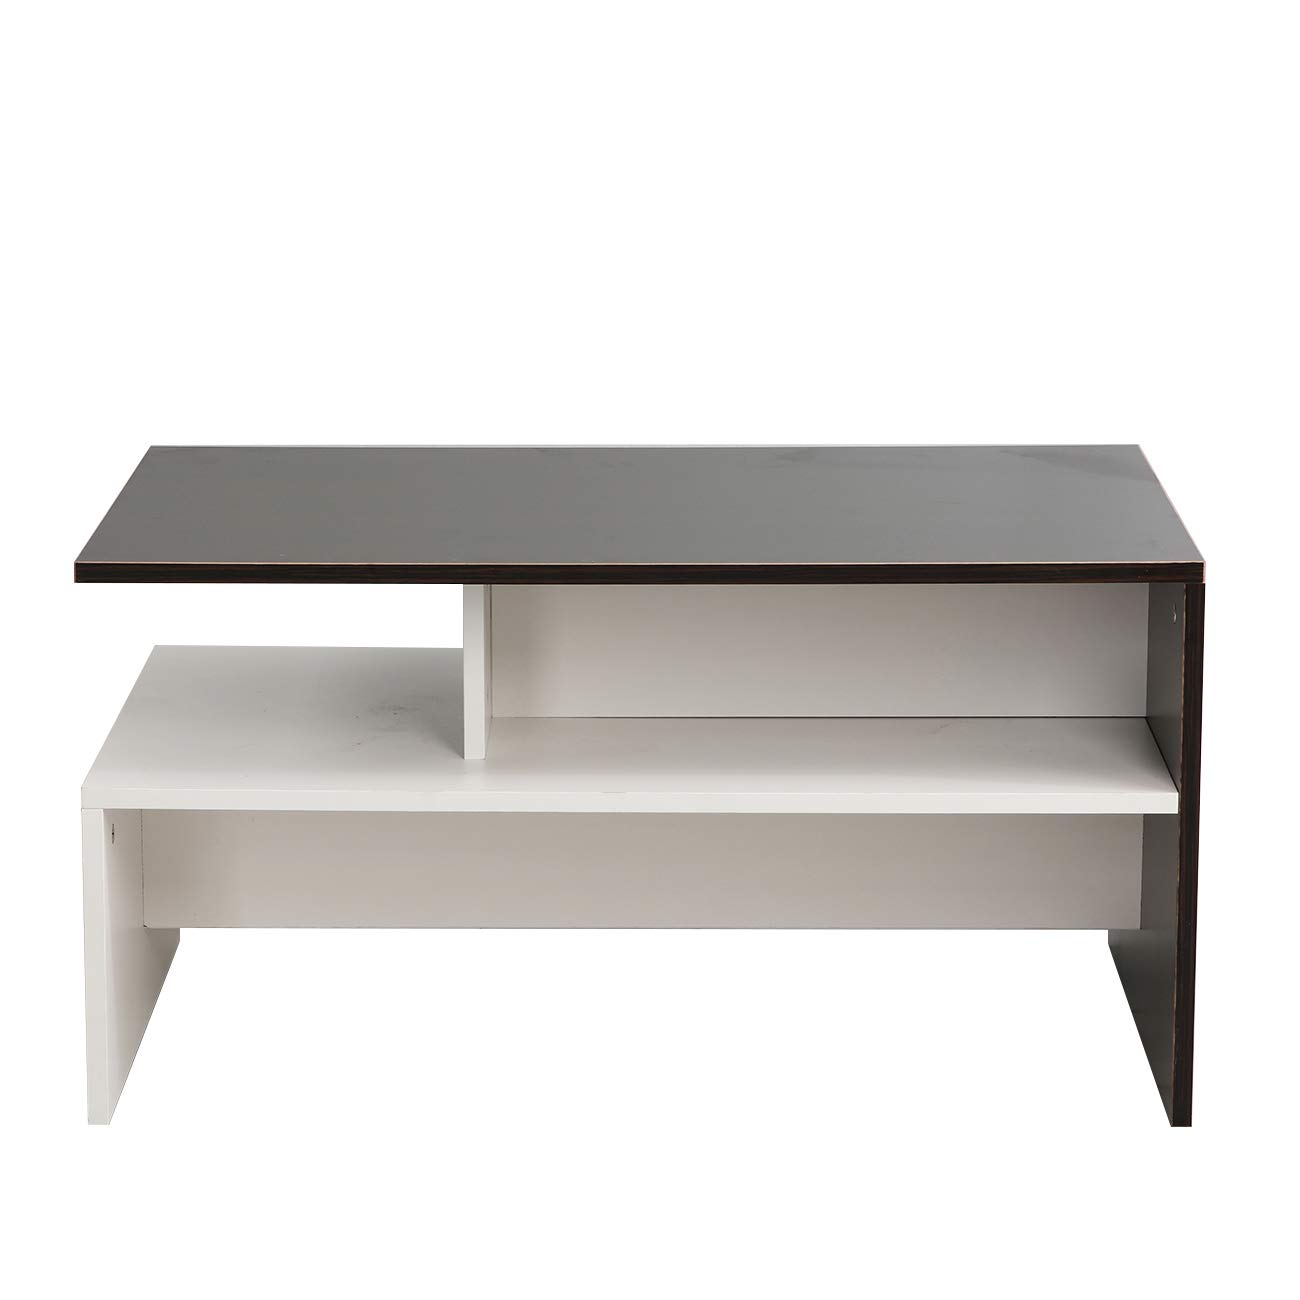 Compact Sofa Side Table Living Room Home Office Furniture sogesfurniture Rectangle Coffee Table with Shelf for Ample Storage 80x50x42cm BHEU-DX-BC04WB